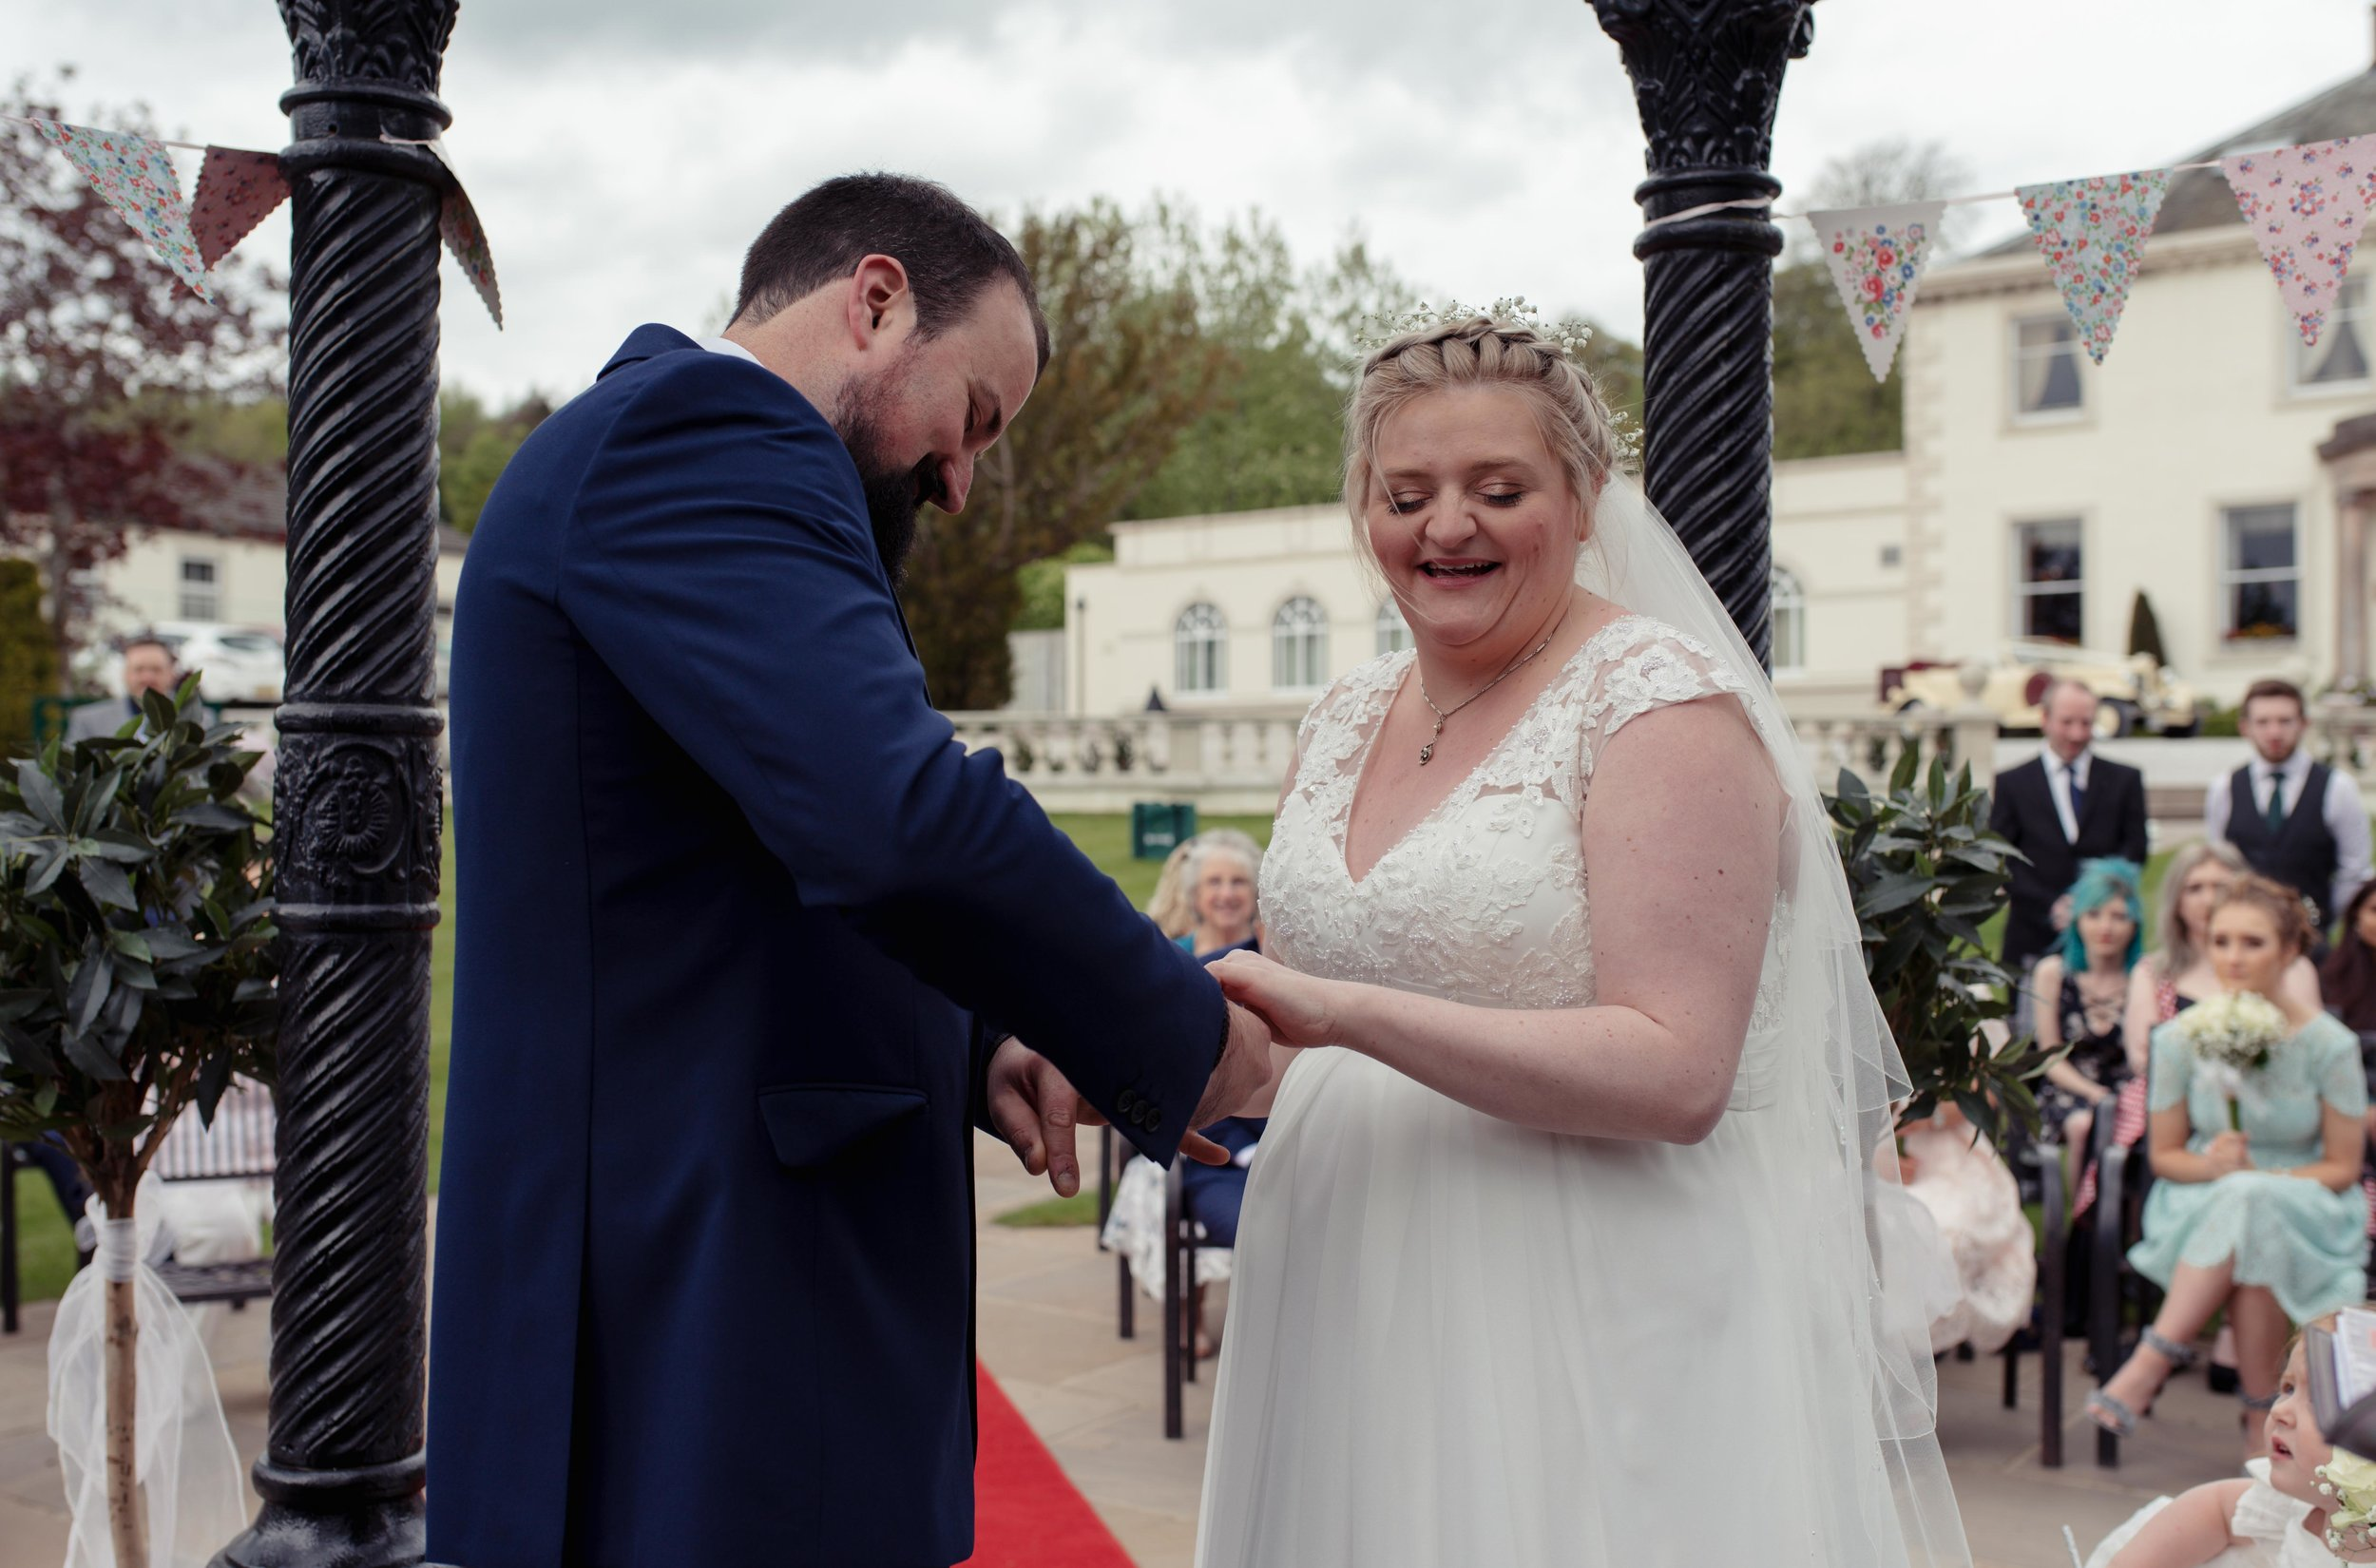 The bride and groom exchange their rings together